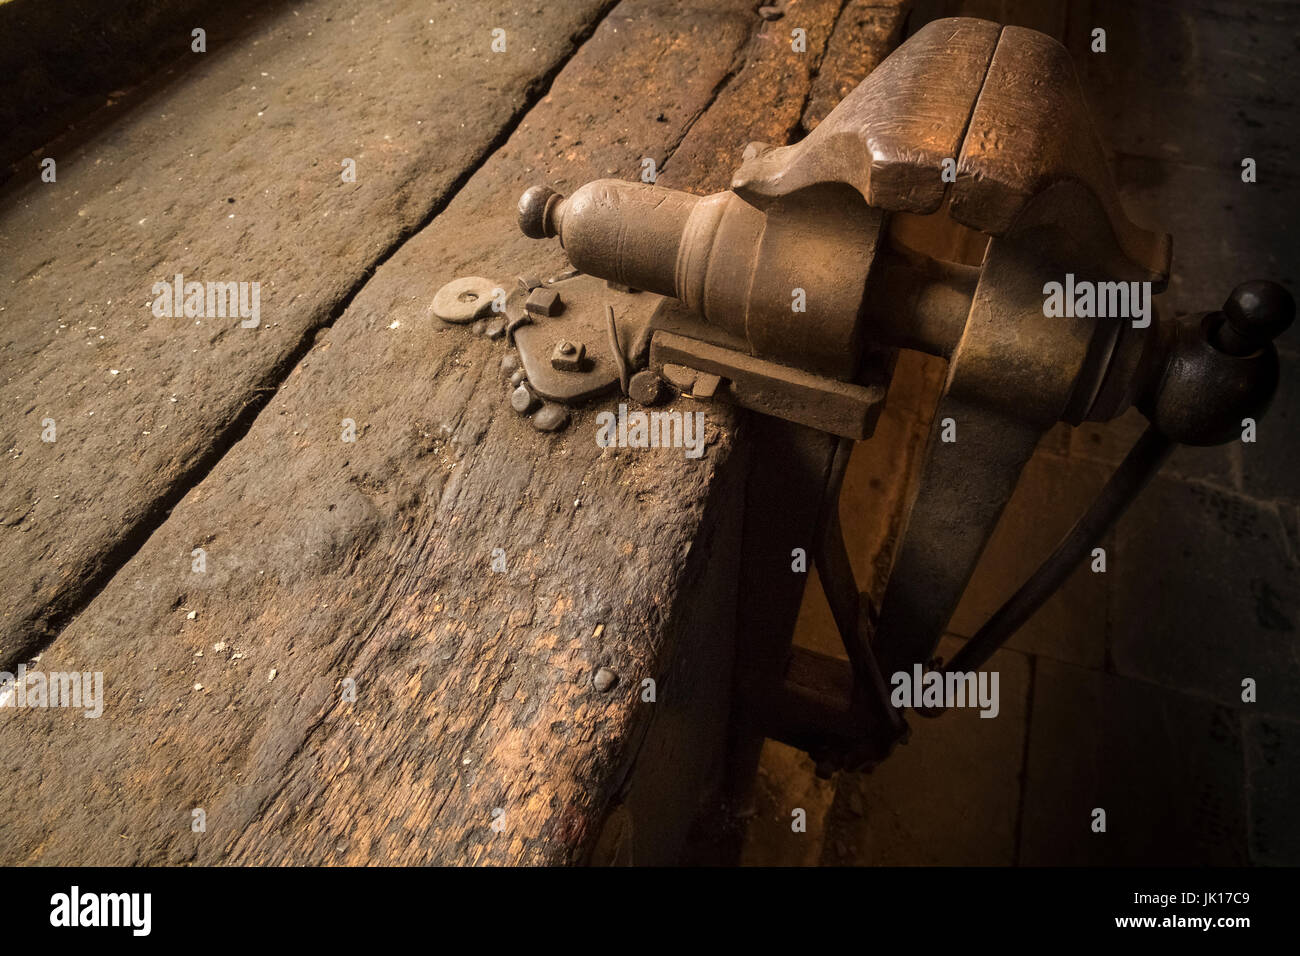 Old metal vice attached to workbench made from worn wooden sleepers. - Stock Image